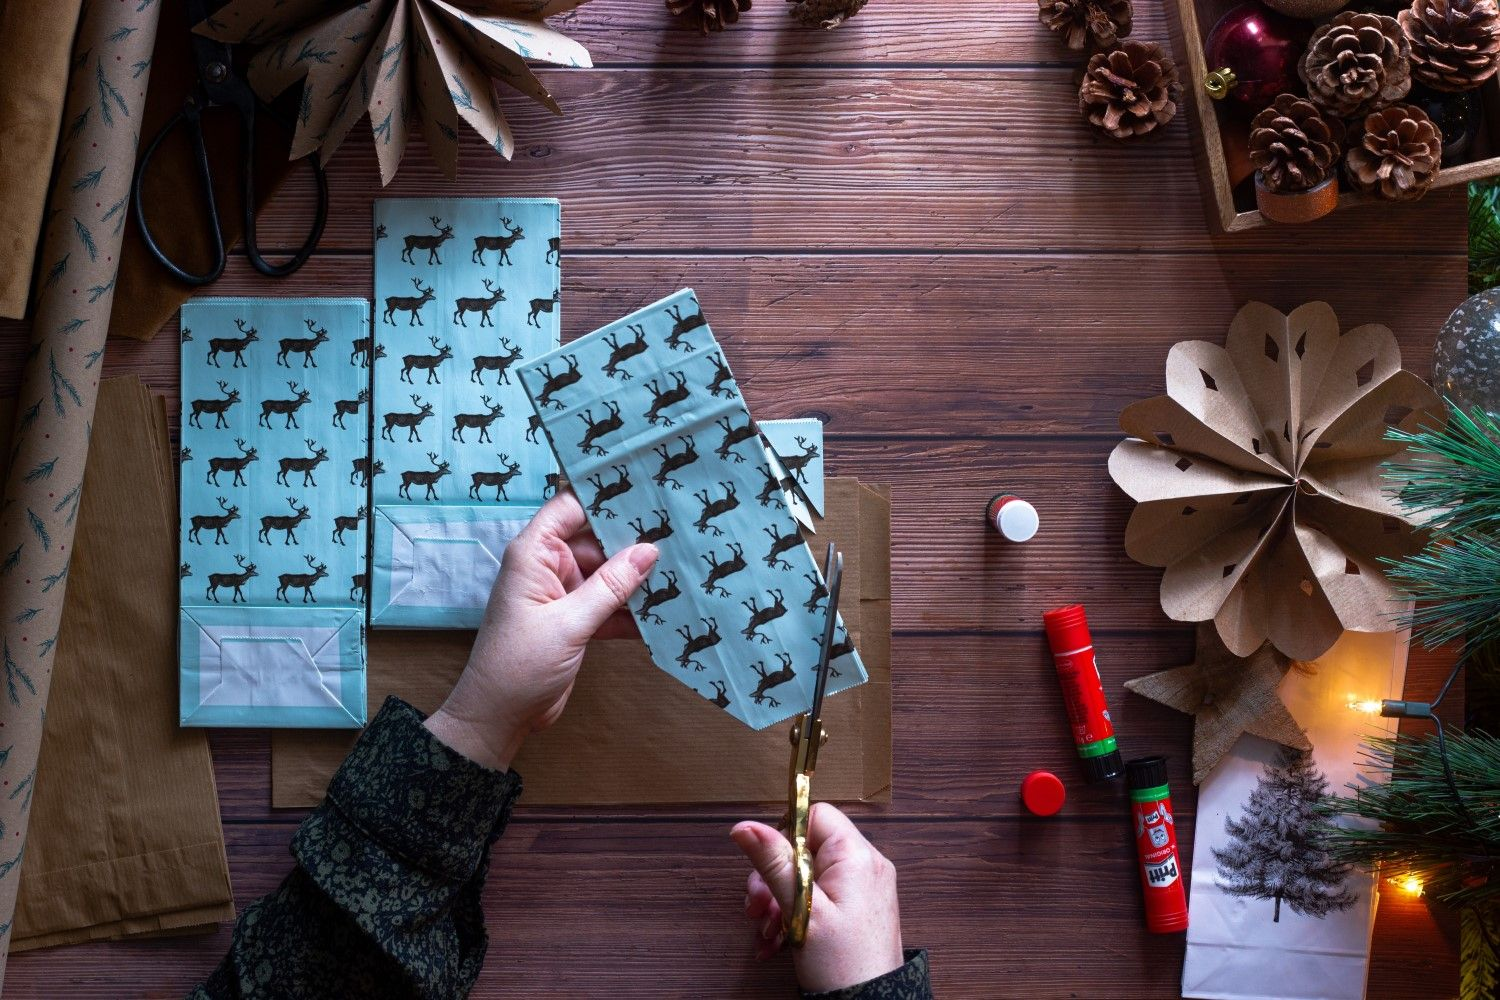 How To Make Your Own Christmas Decorations At Home